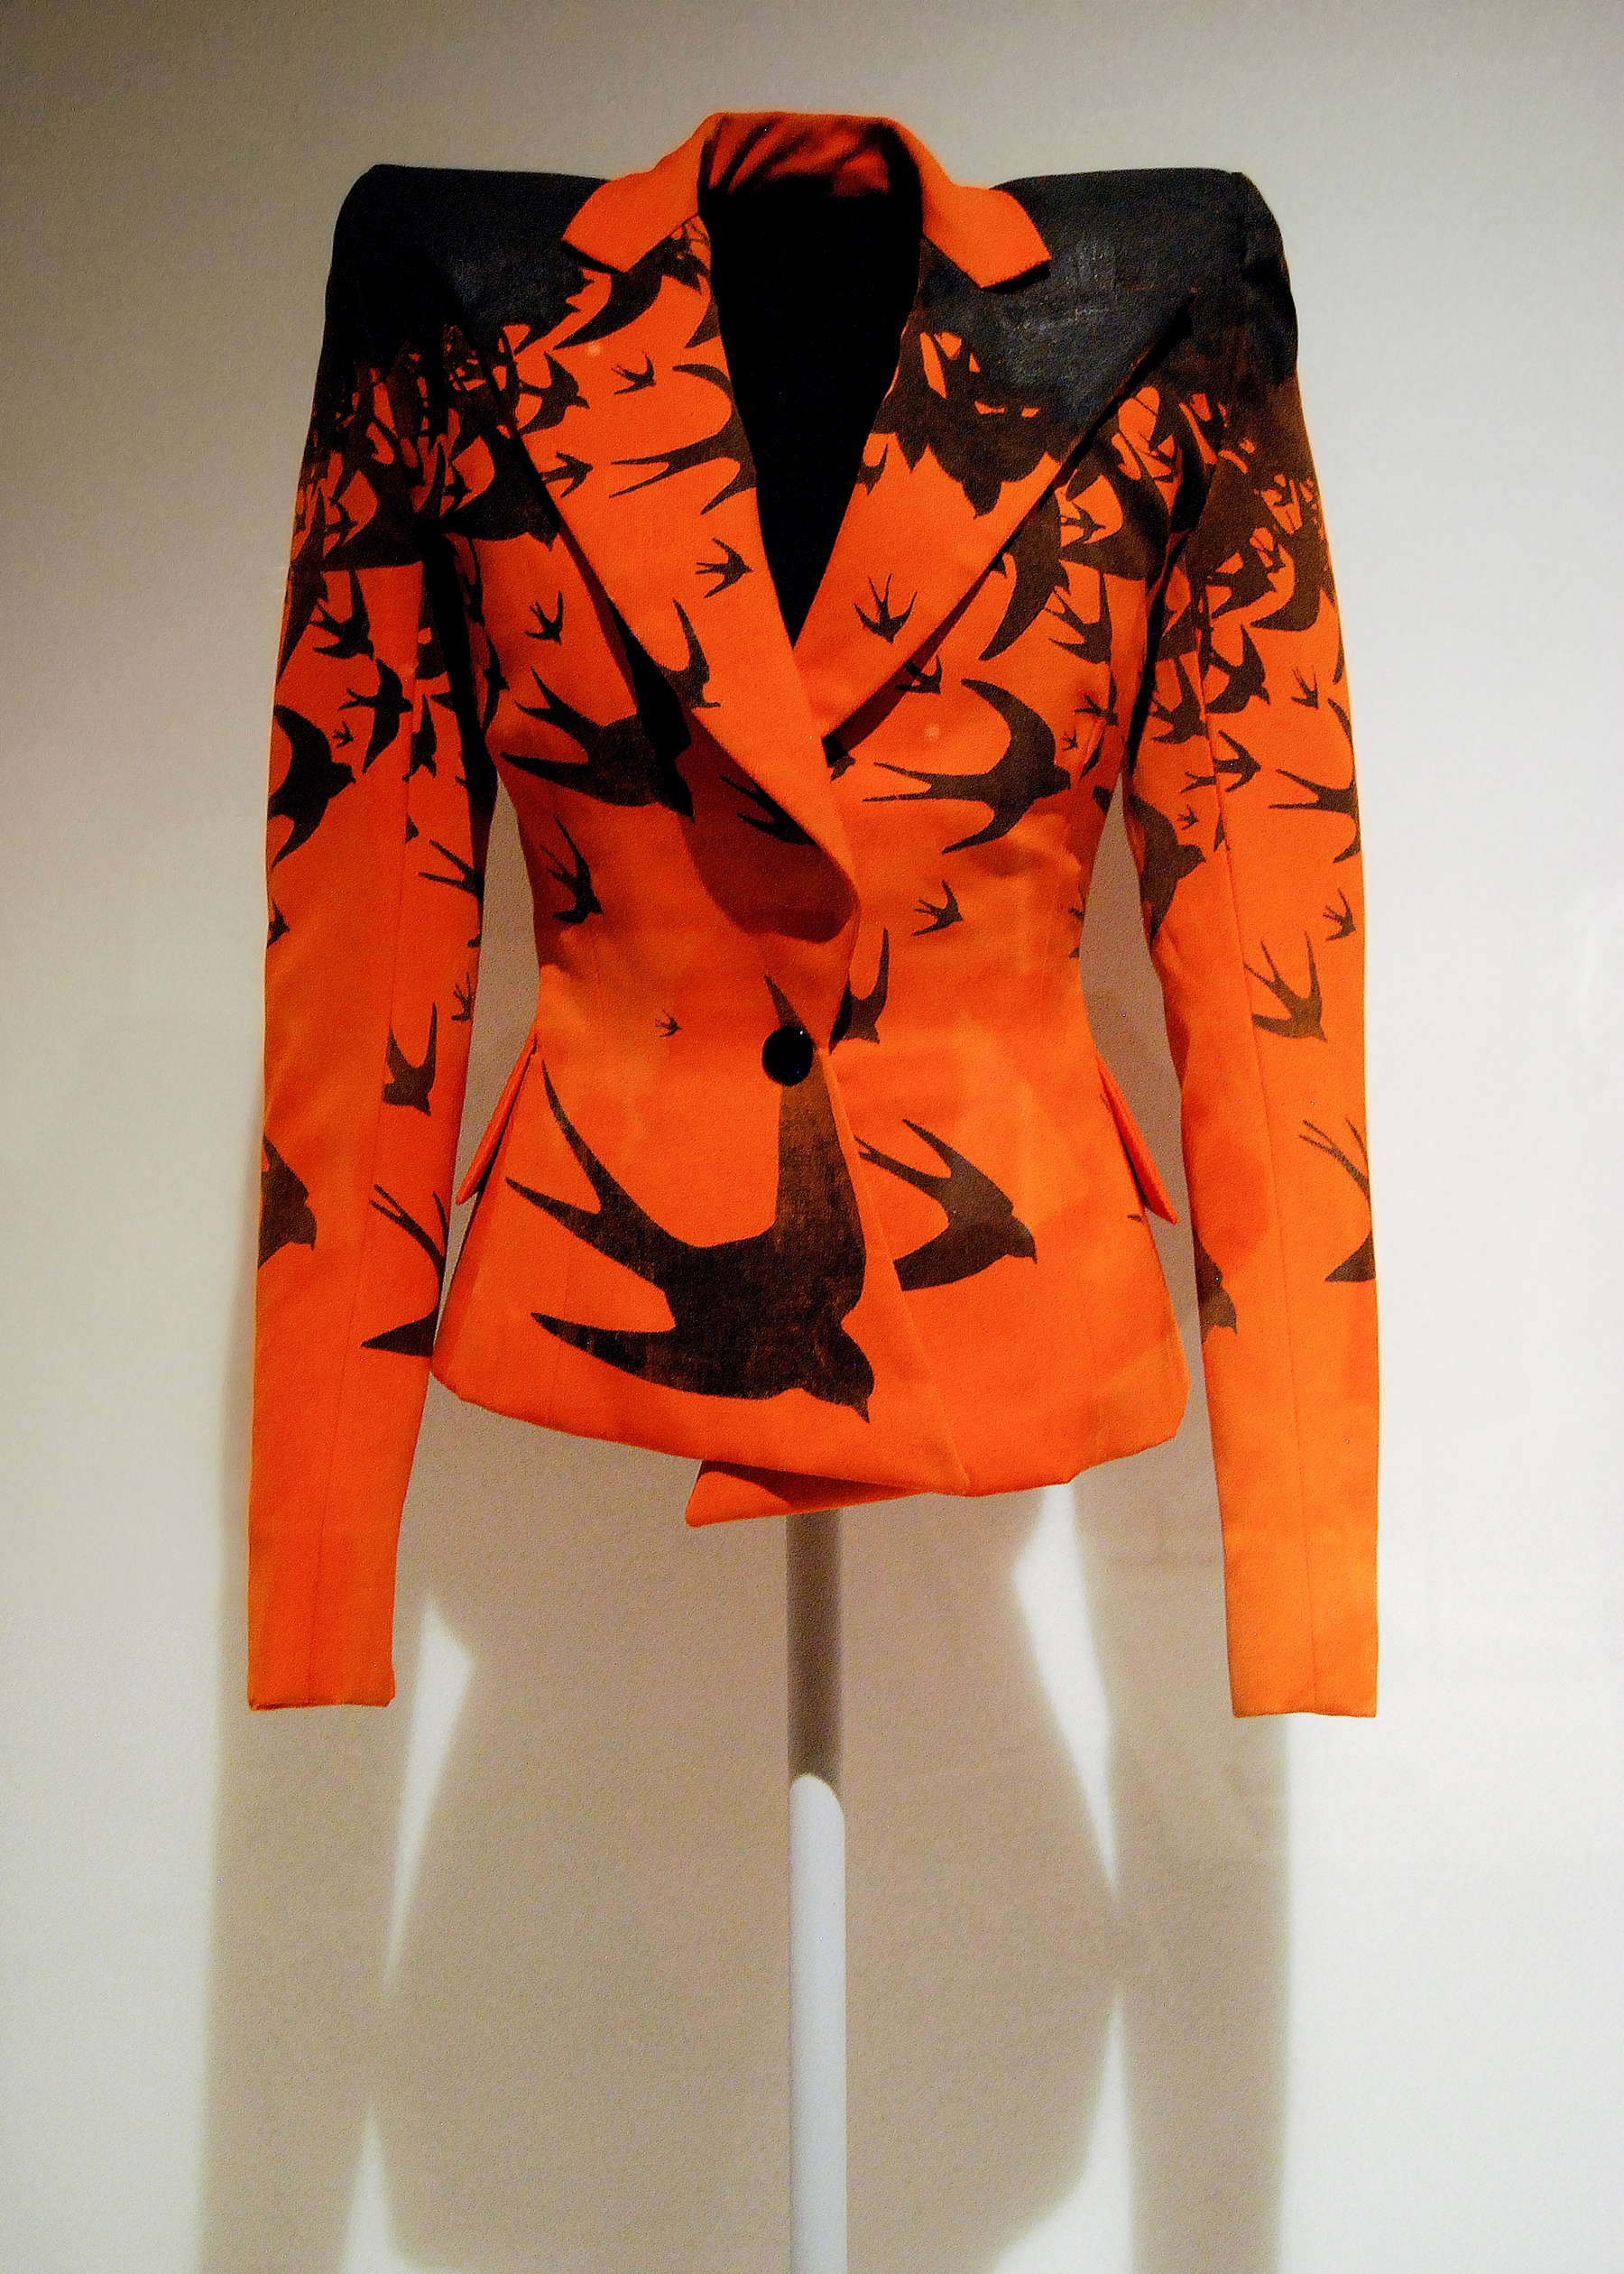 Alexander McQueen , Jacket, spring/summer 1995. Orange wool twill printed with black swallow motifs and hand-painted with black pigment.